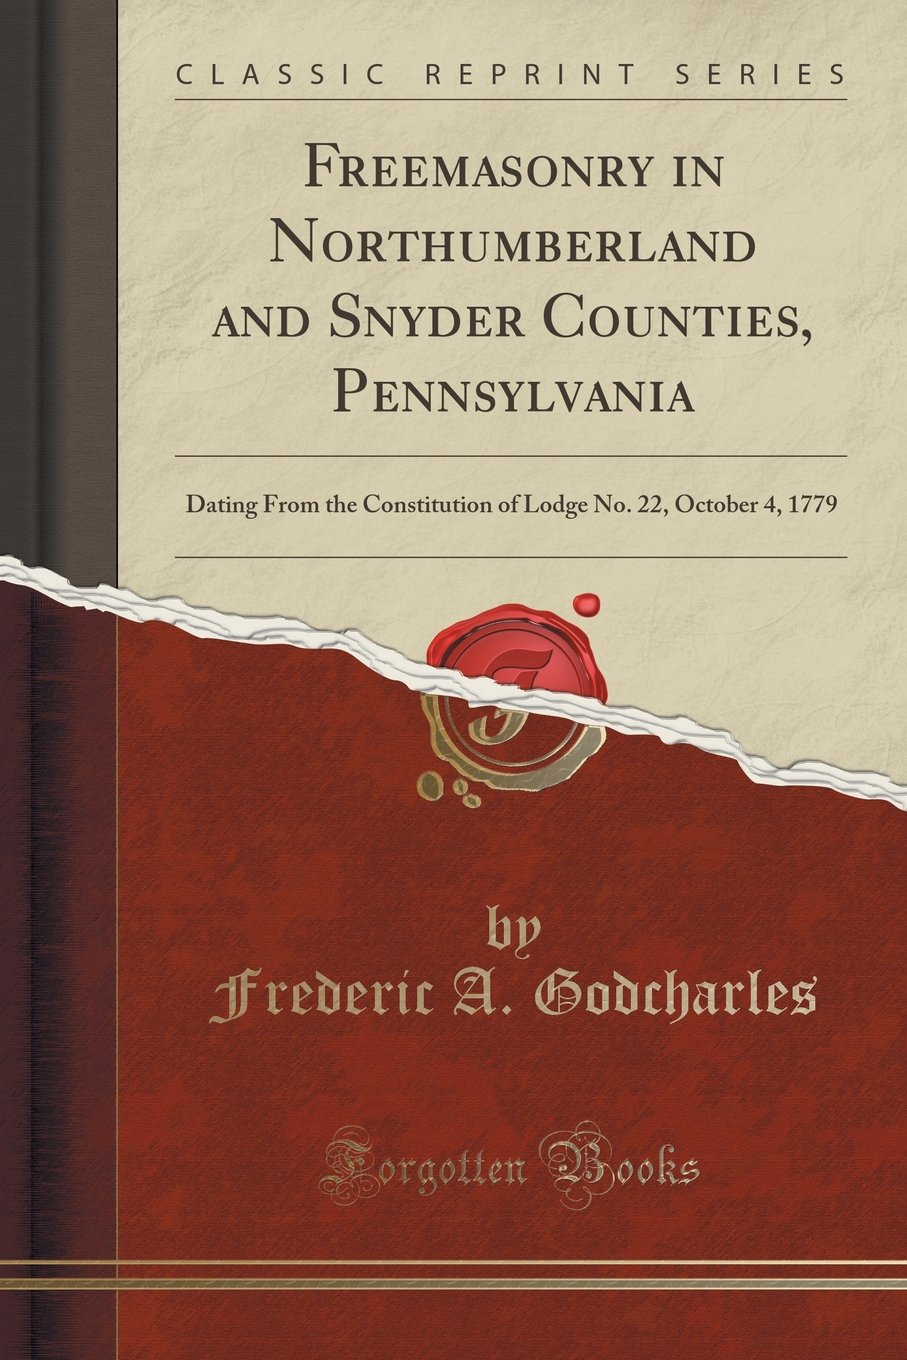 Freemasonry in Northumberland and Snyder Counties, Pennsylvania: Dating From the Constitution of Lodge No. 22, October 4, 1779 (Classic Reprint) PDF